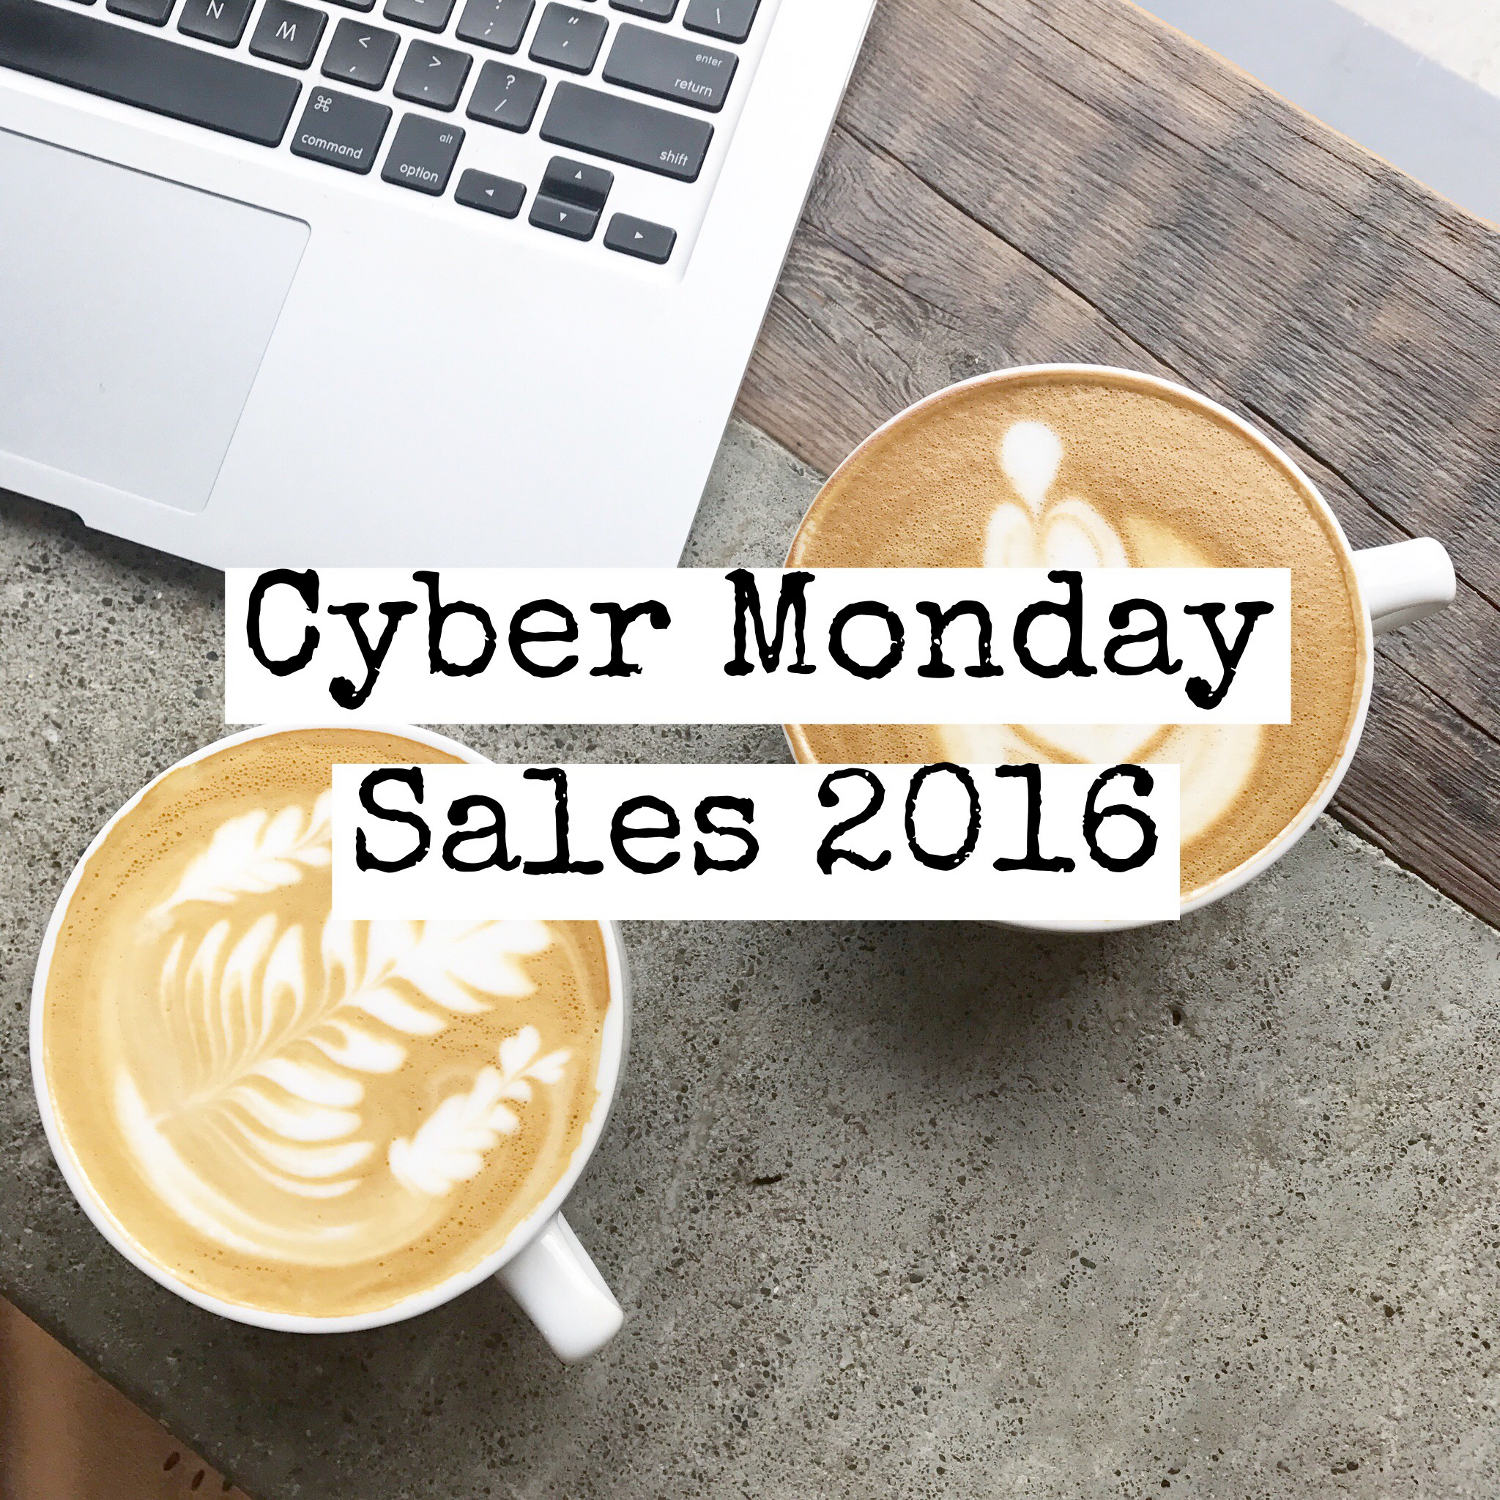 cyber monday 2016 - cyber monday sales 2016